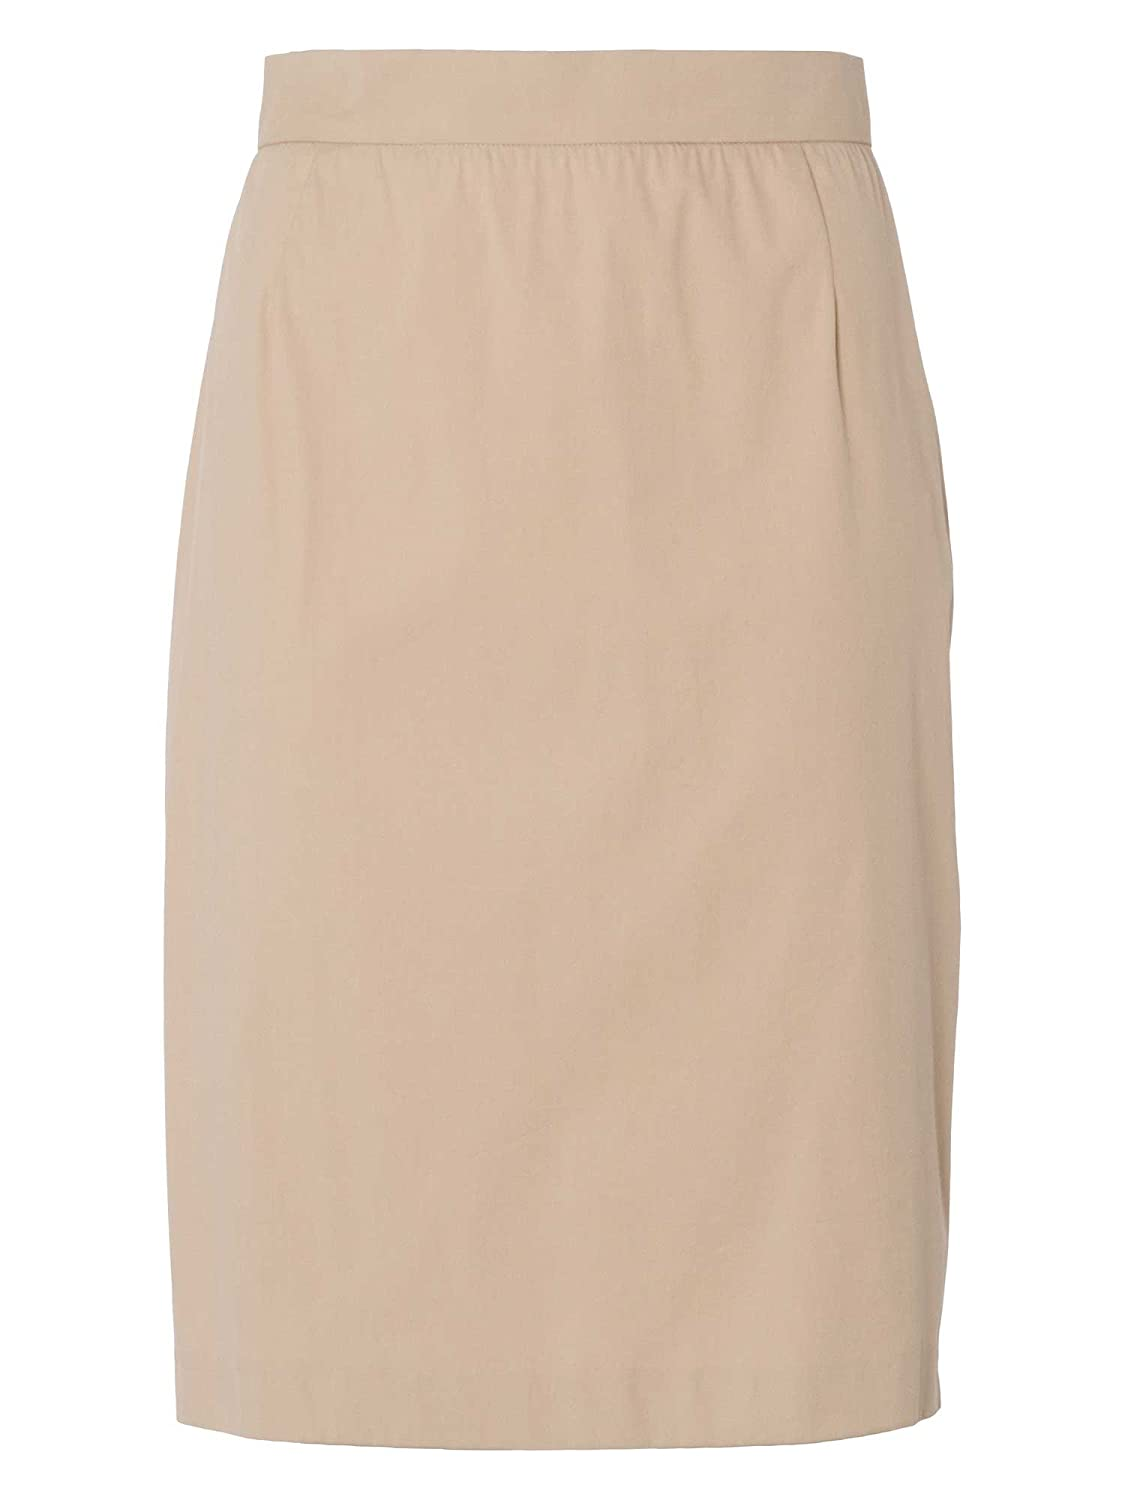 PRADA Women pencil skirt